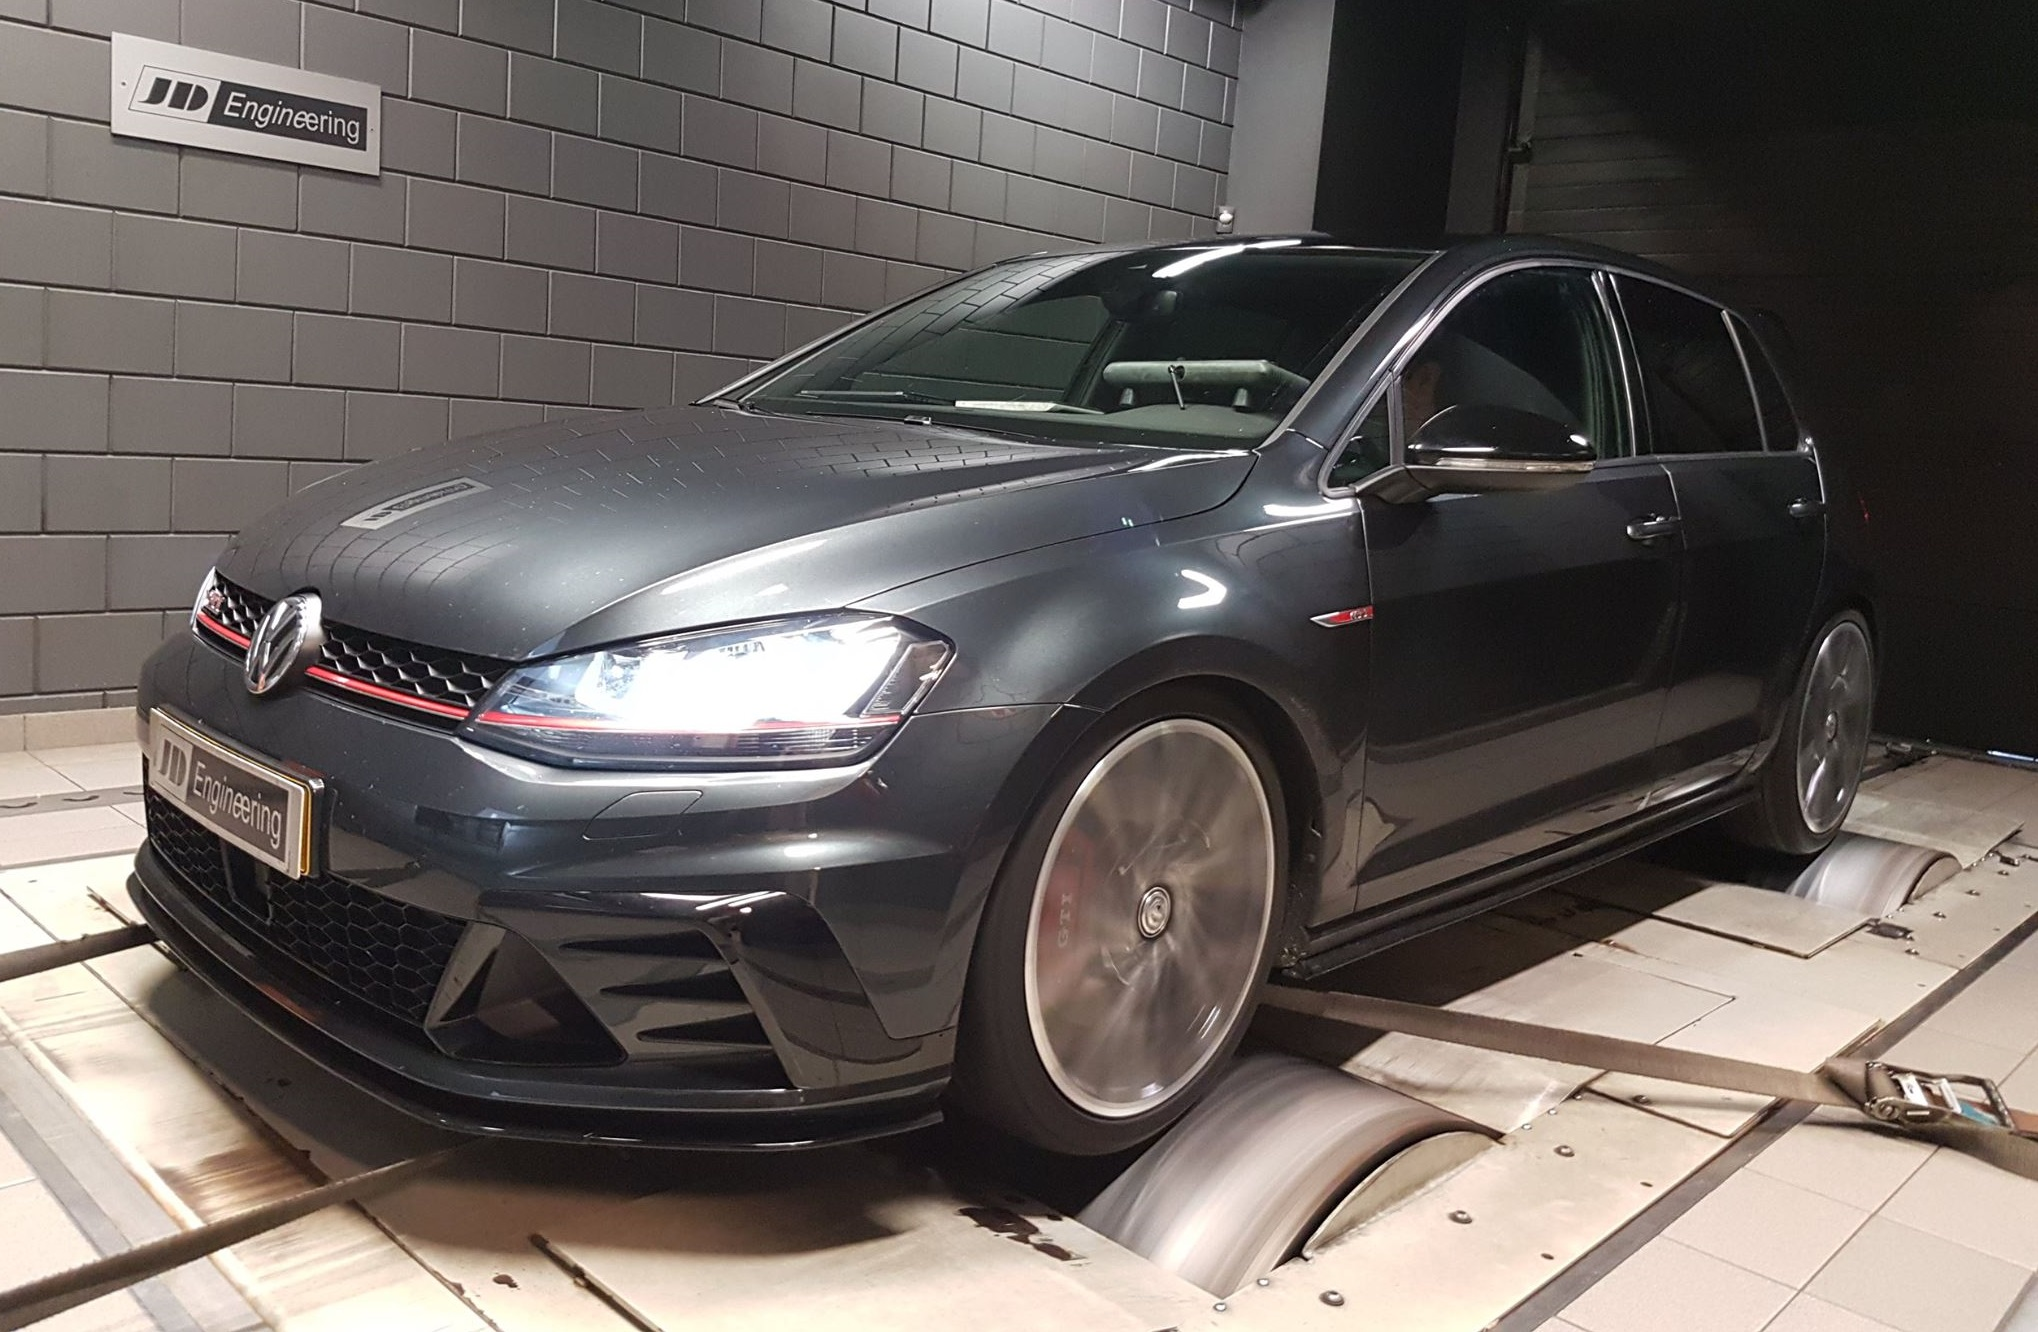 VW Golf 7 Clubsport